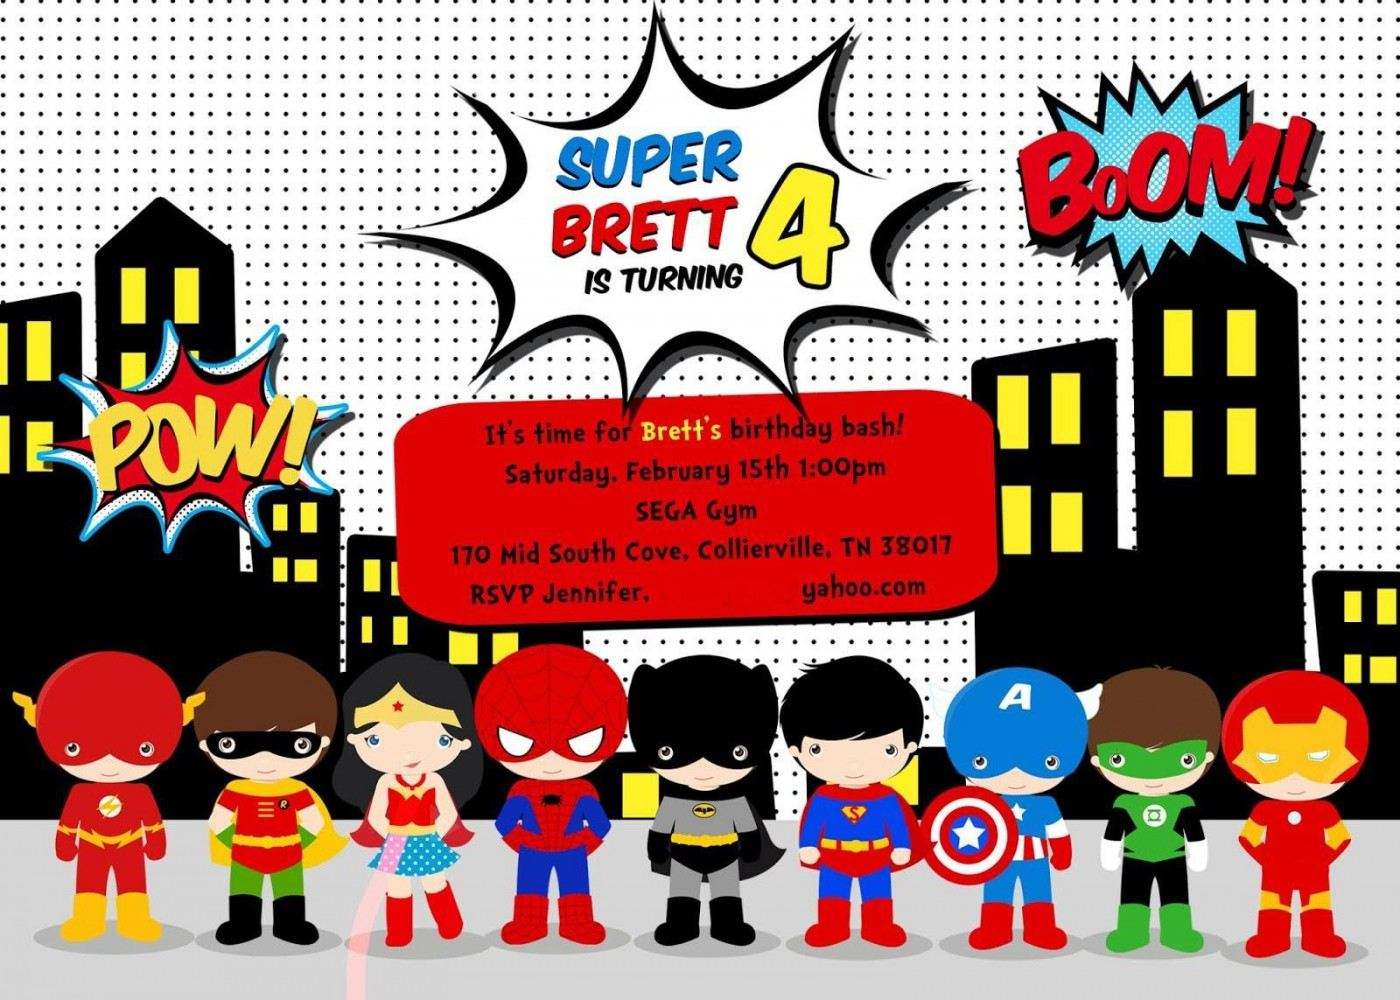 005 Remarkable Superhero Invitation Template Free Highest Clarity  Newspaper Party Birthday Invite1400